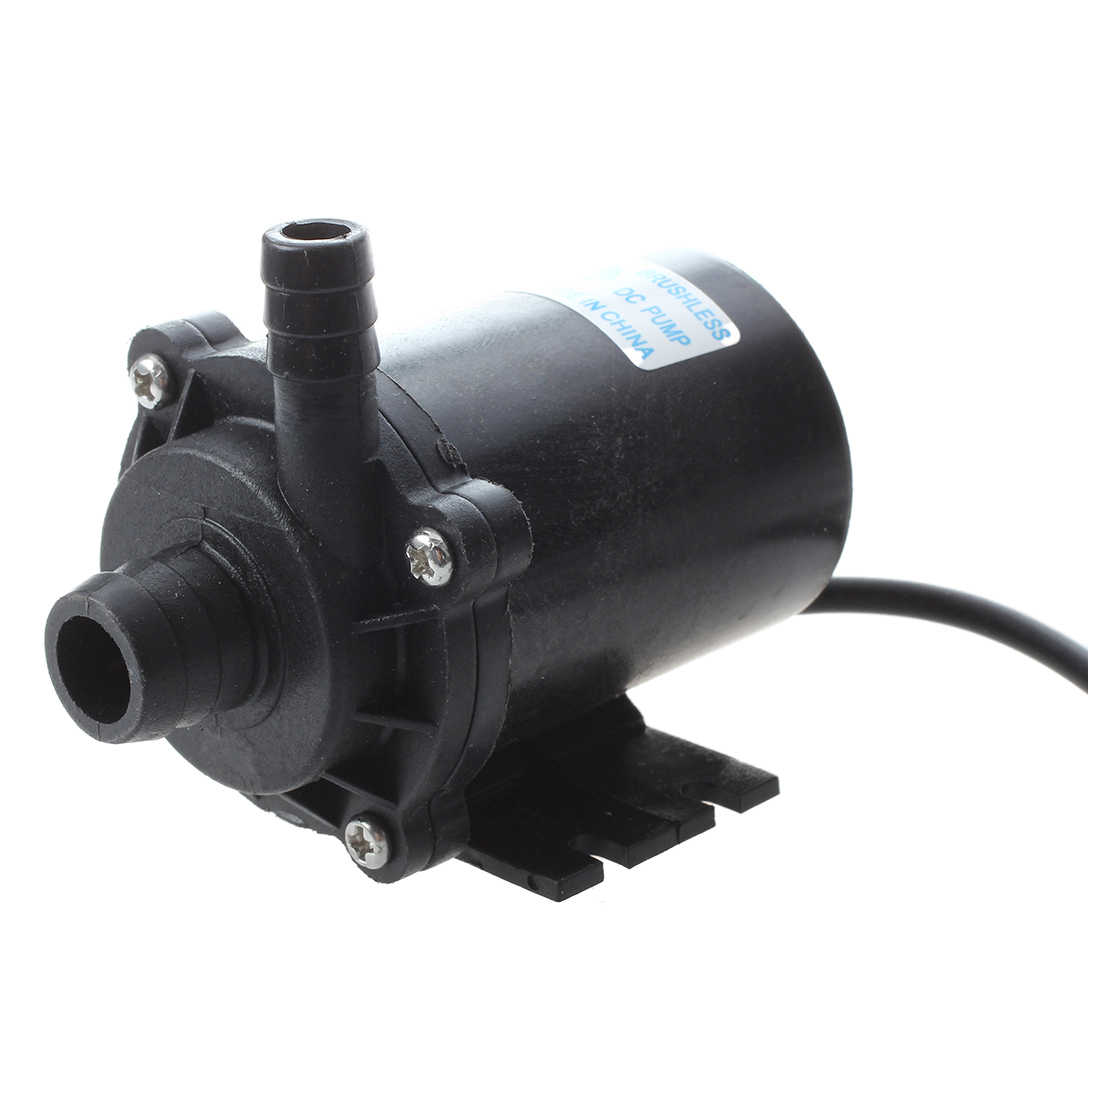 Submersible Water Pump For Fountain Pond Brushless 24v